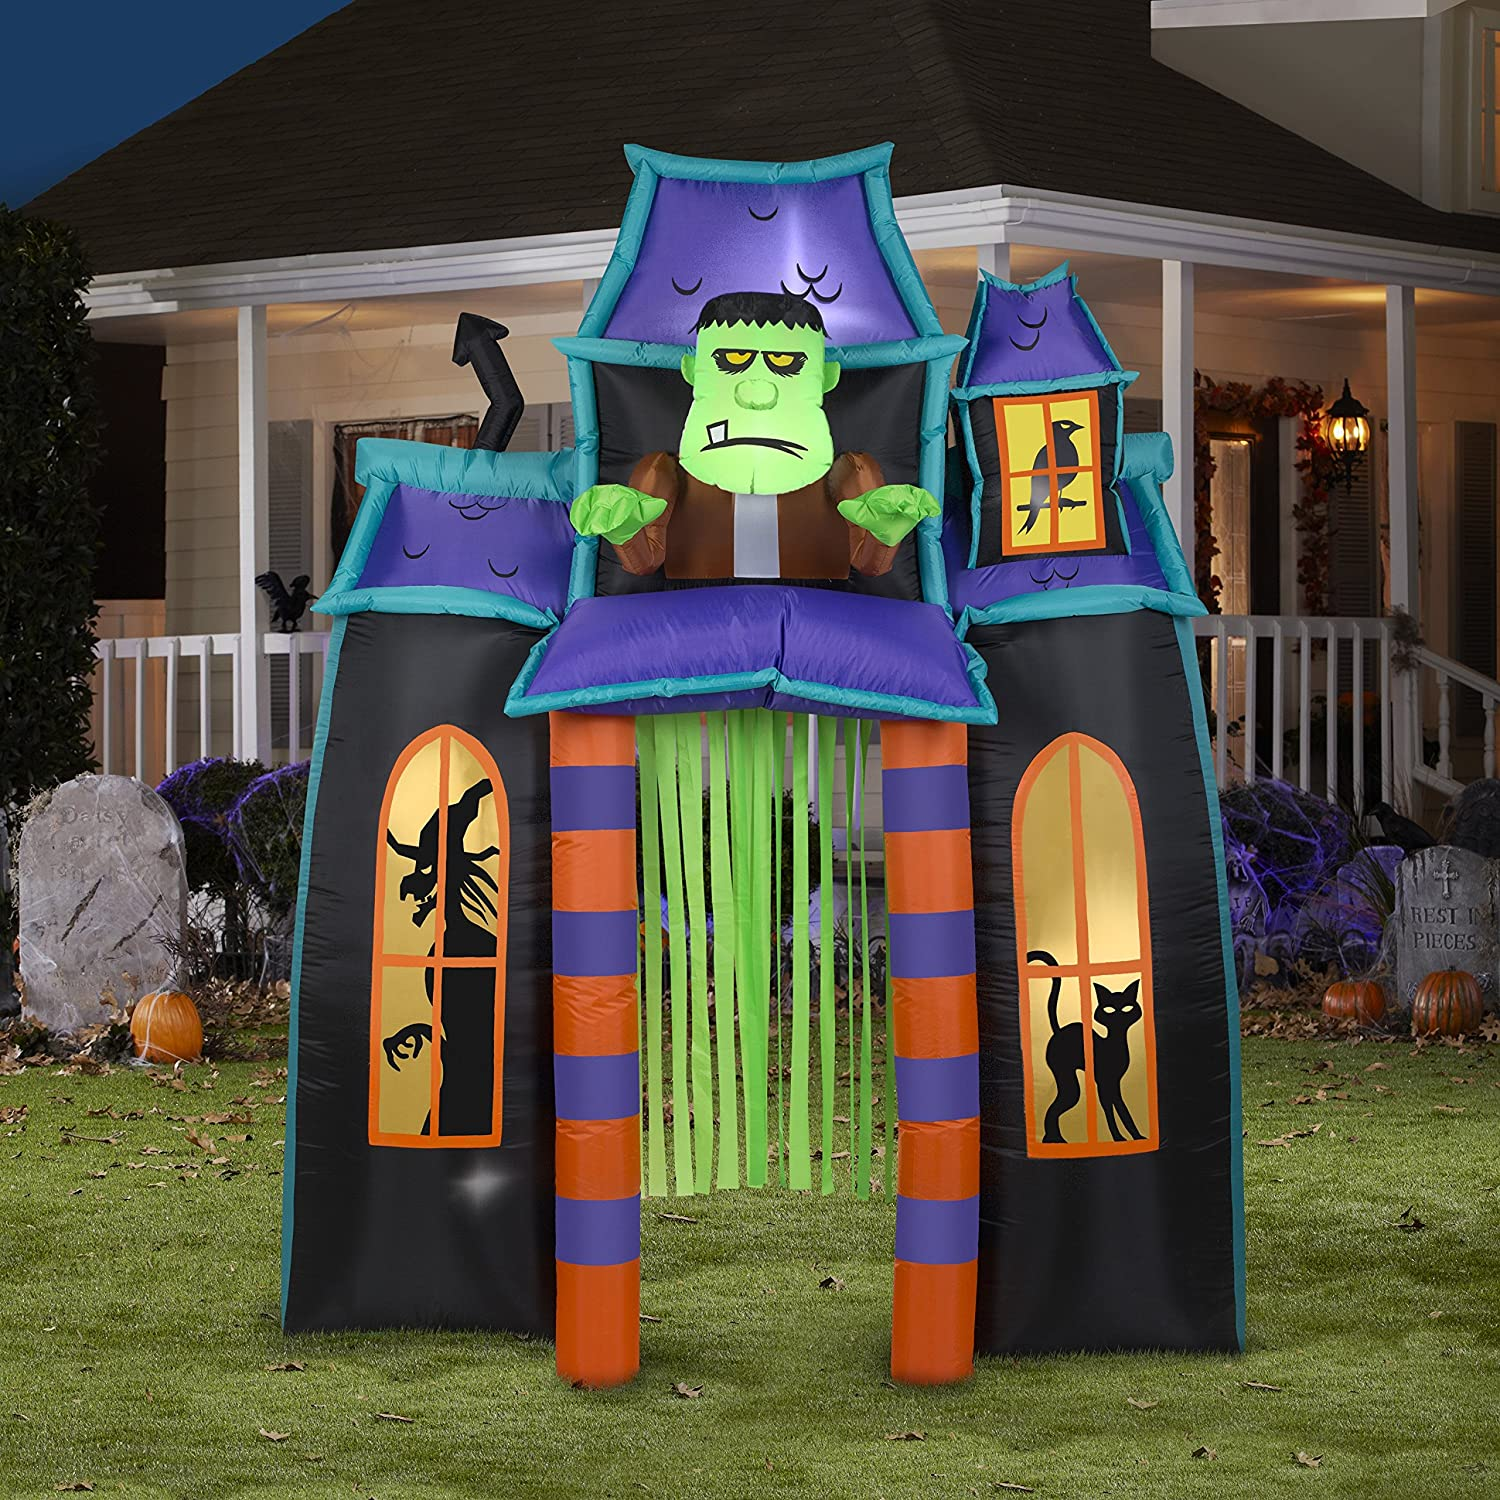 Frankenstein Outdoor Inflatables